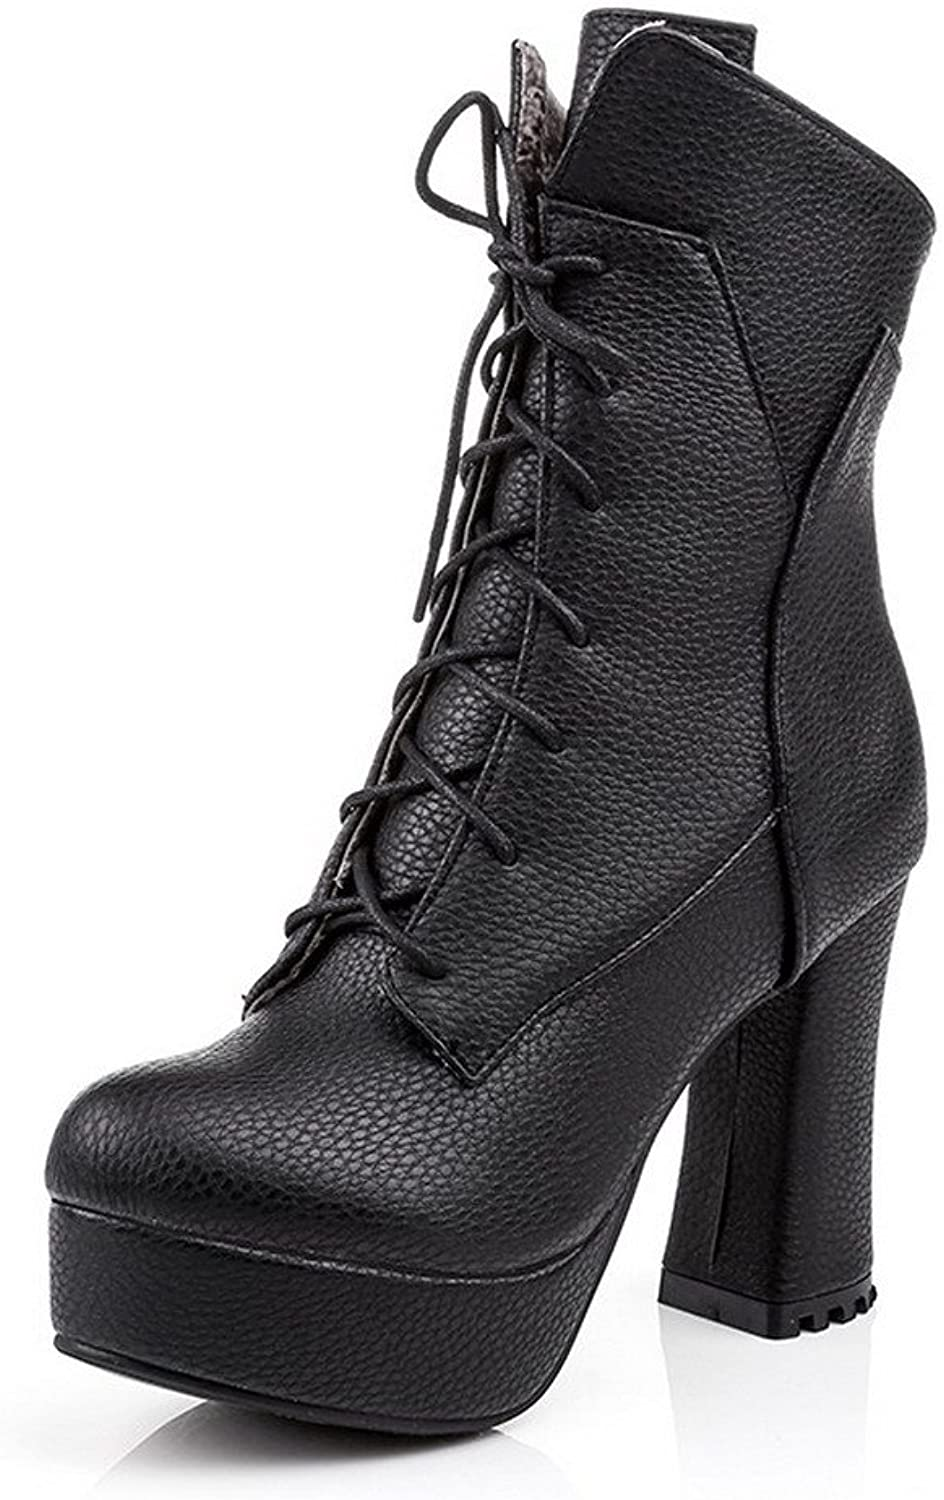 WeiPoot Women's High Heels Round Closed Toe Blend Materials Low-top Boots